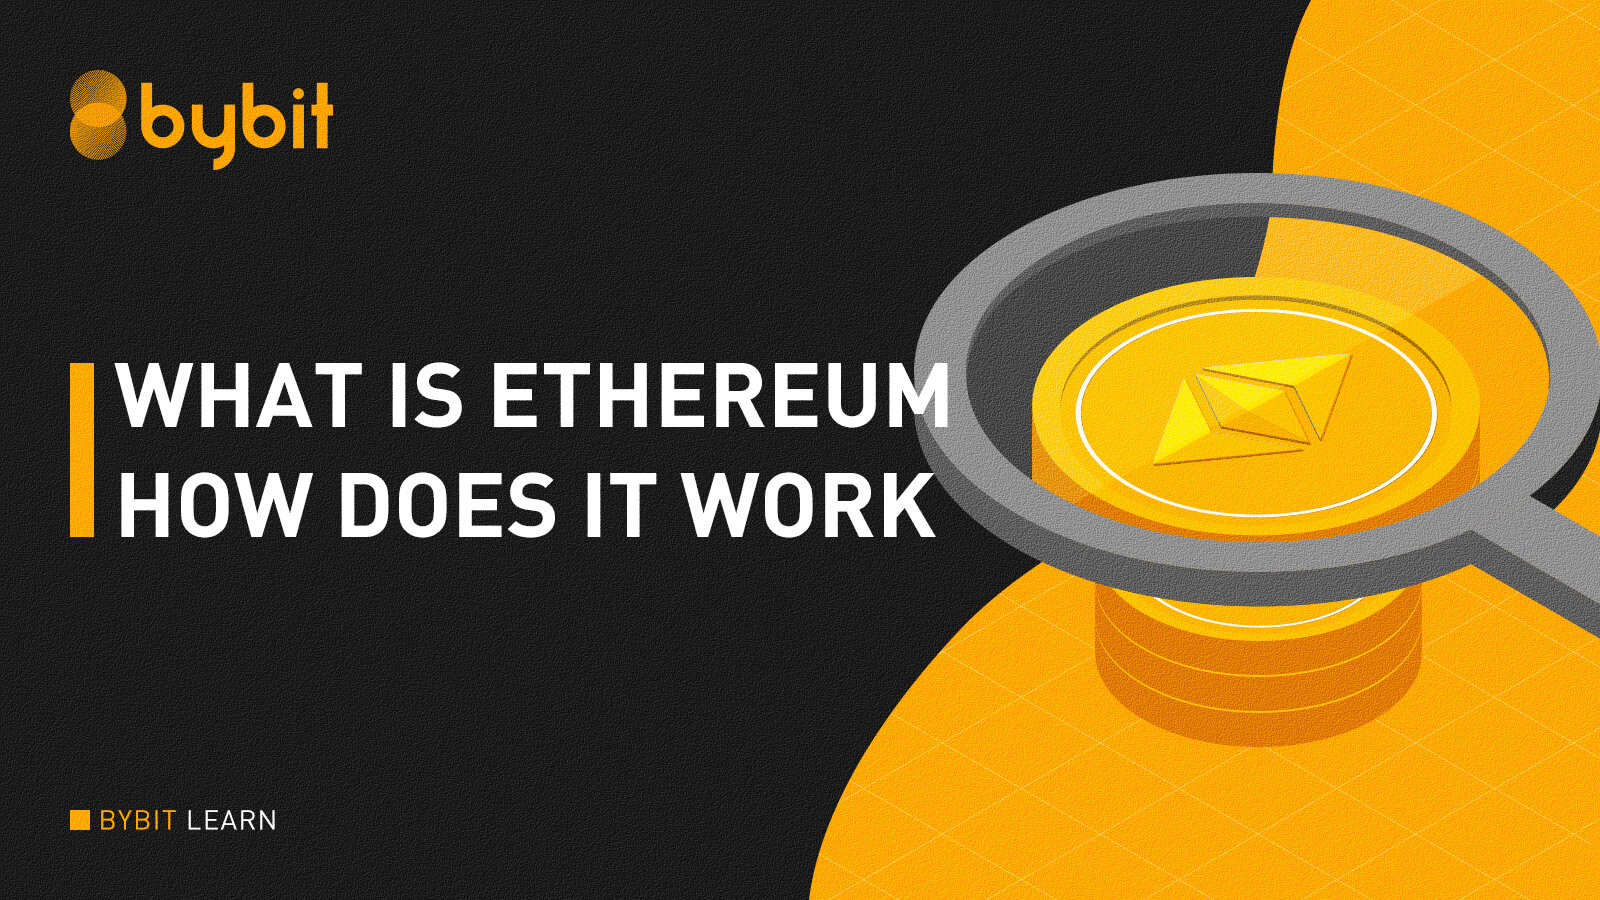 What is Ethereum and how does it work?